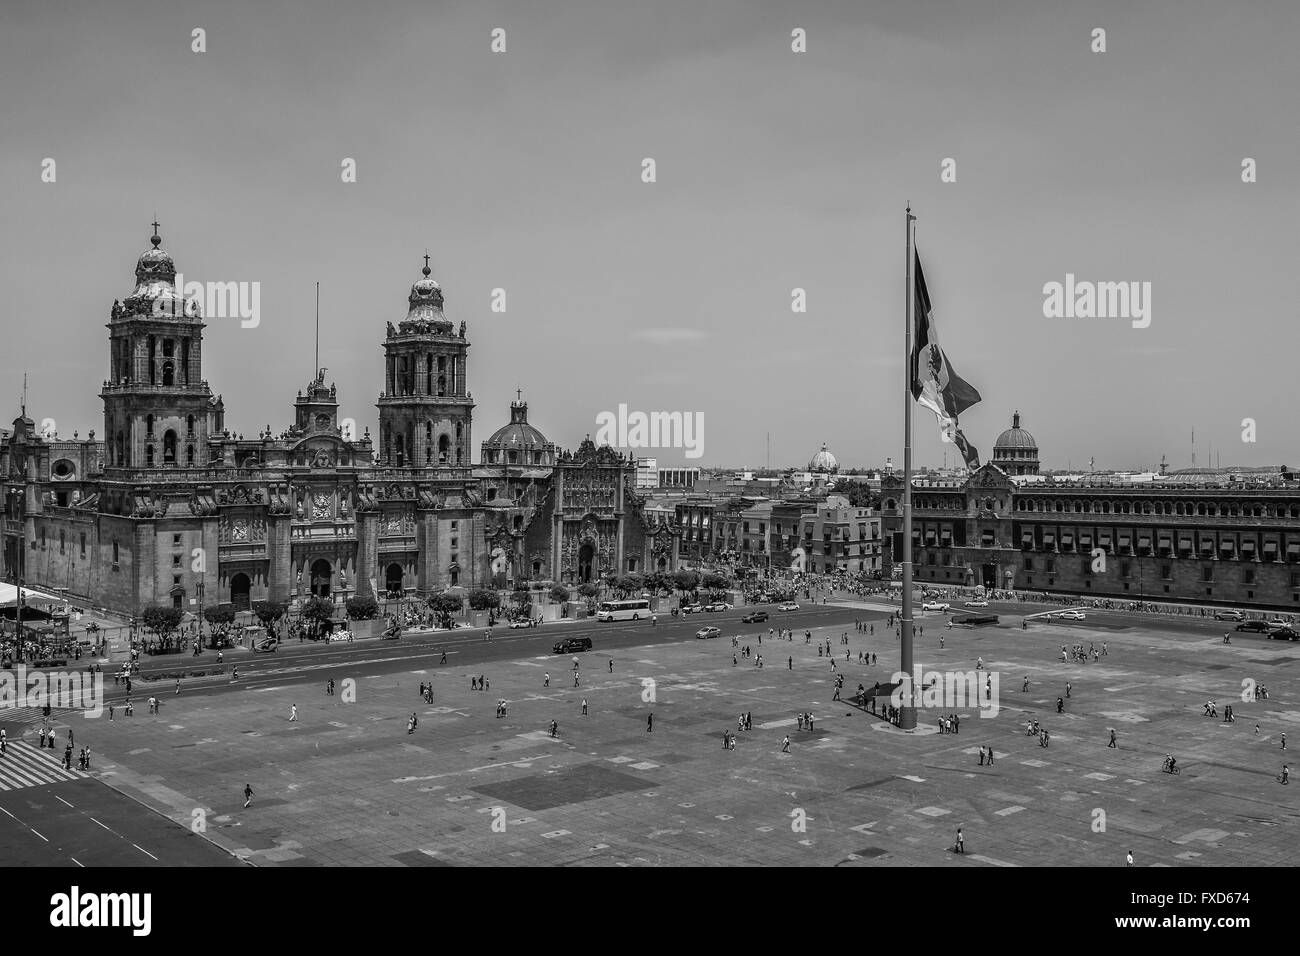 Plaza de la Constitución (Zócalo and Cathedral) in Mexico City - Stock Image